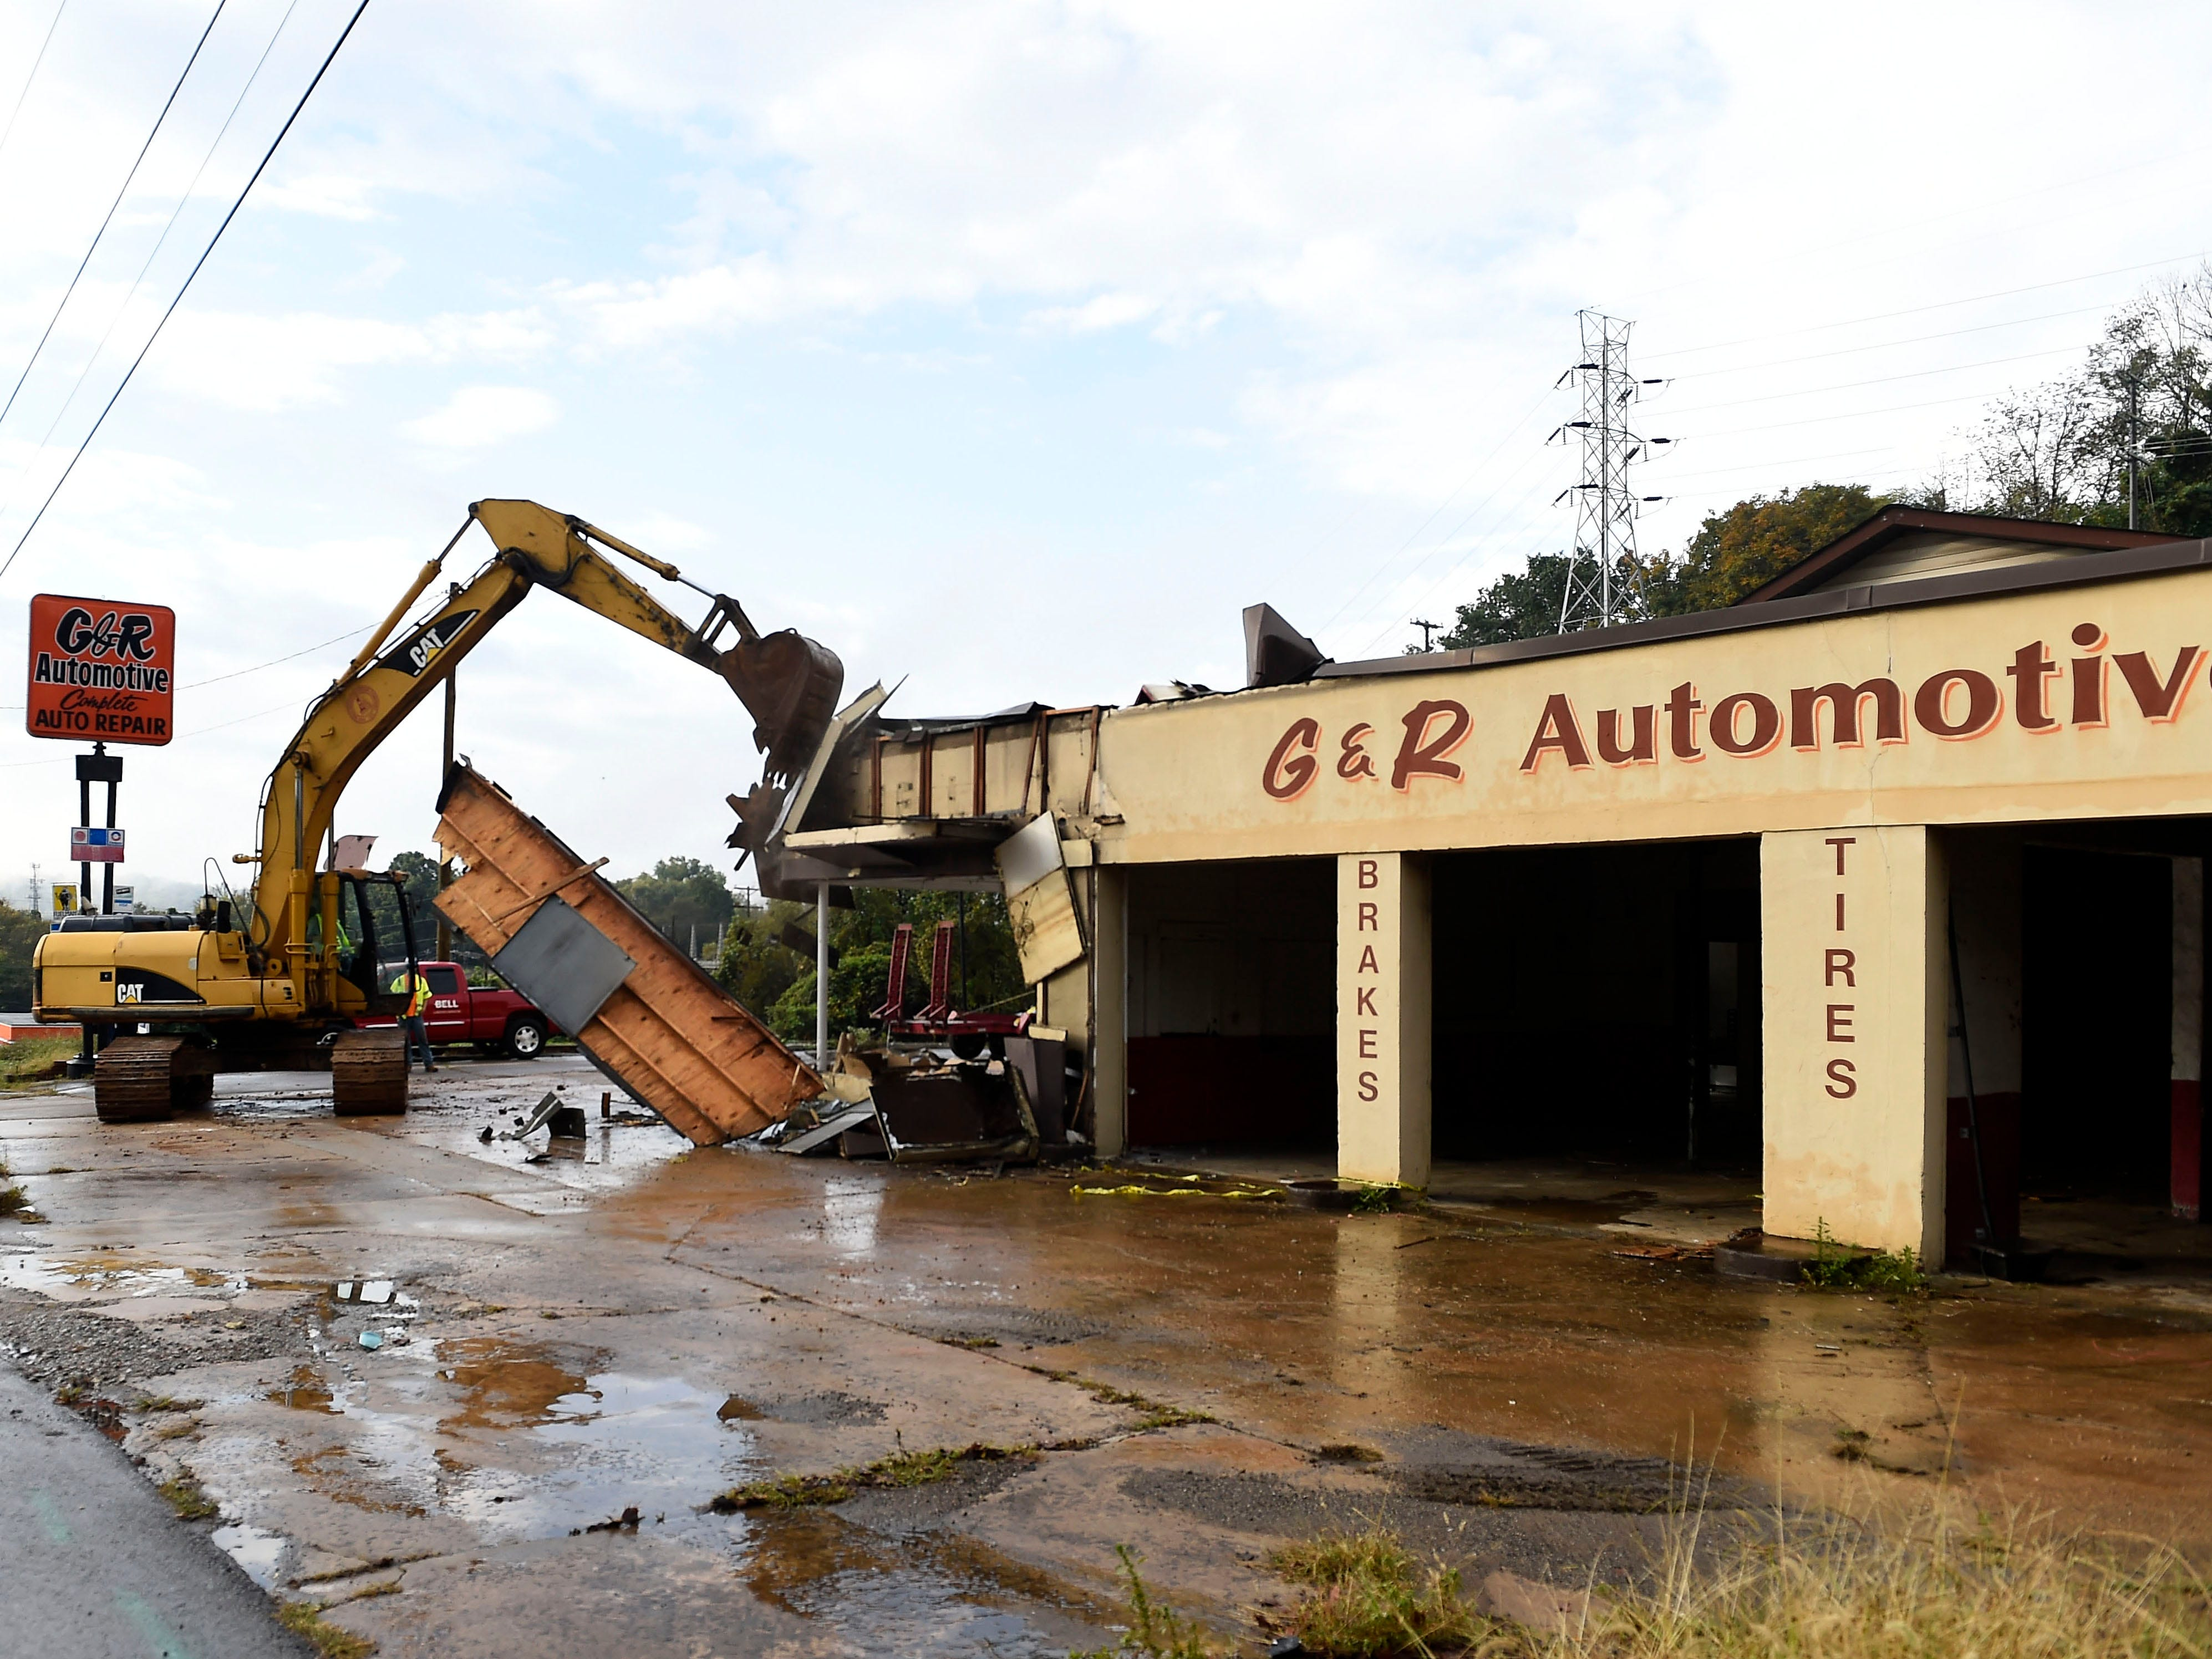 Employees with Bell Construction begin demolition on G&R Automotive on Chapman Highway on Monday, Oct. 13, 2014 in Knoxville, Tenn. The demolition will allow for construction of a new entryway into Fort Dickerson Park.